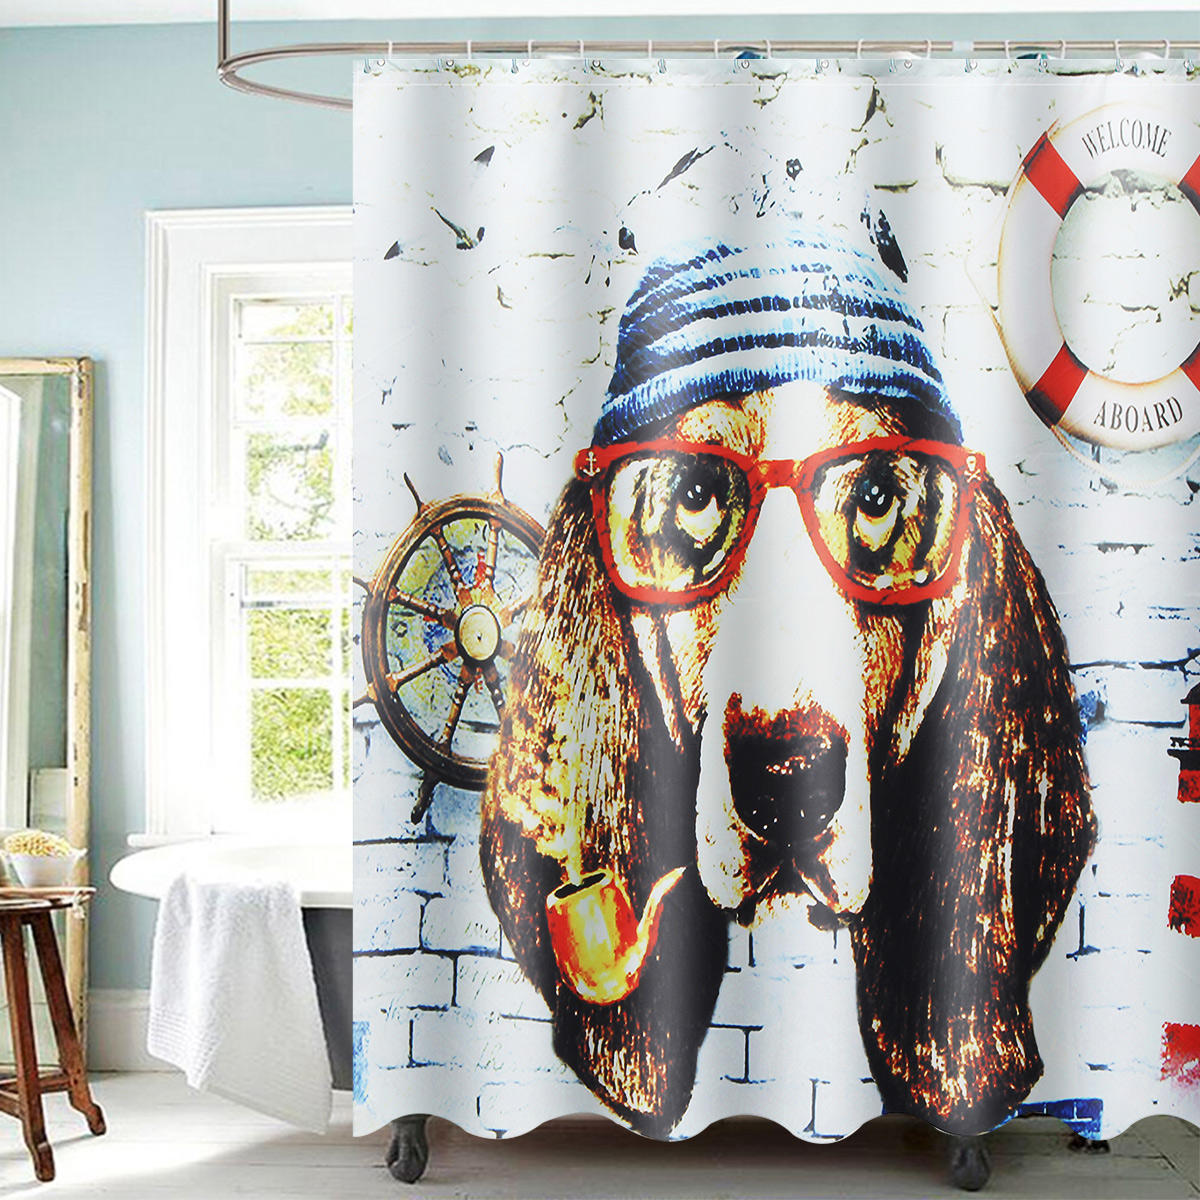 Modern Animal 3D Waterproof Polyester Shower Curtain Dog Octopus Pattern With 12 Plastic Hooks For Bath And Shower